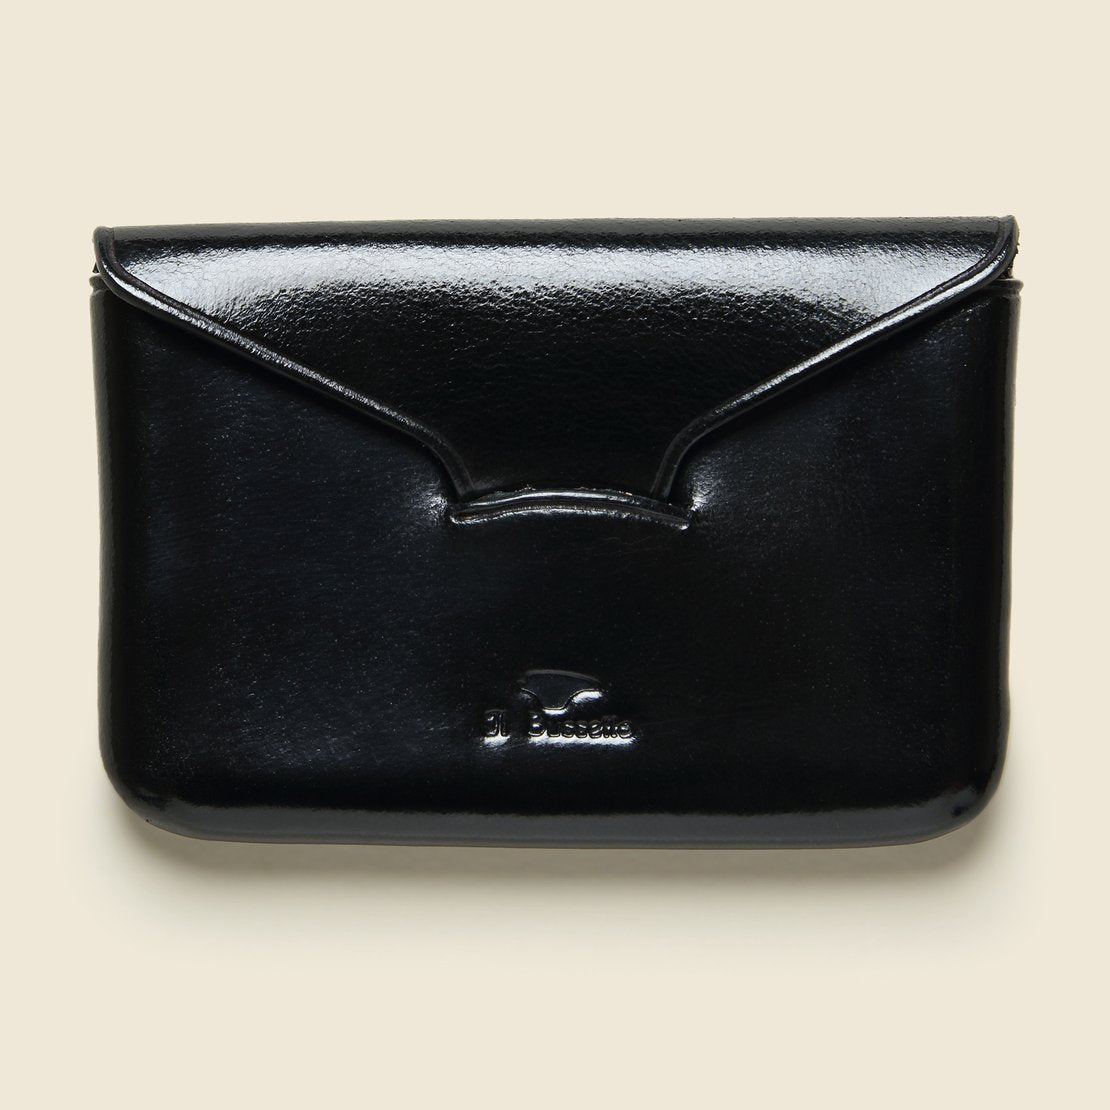 Il Bussetto Business Card Holder - Black